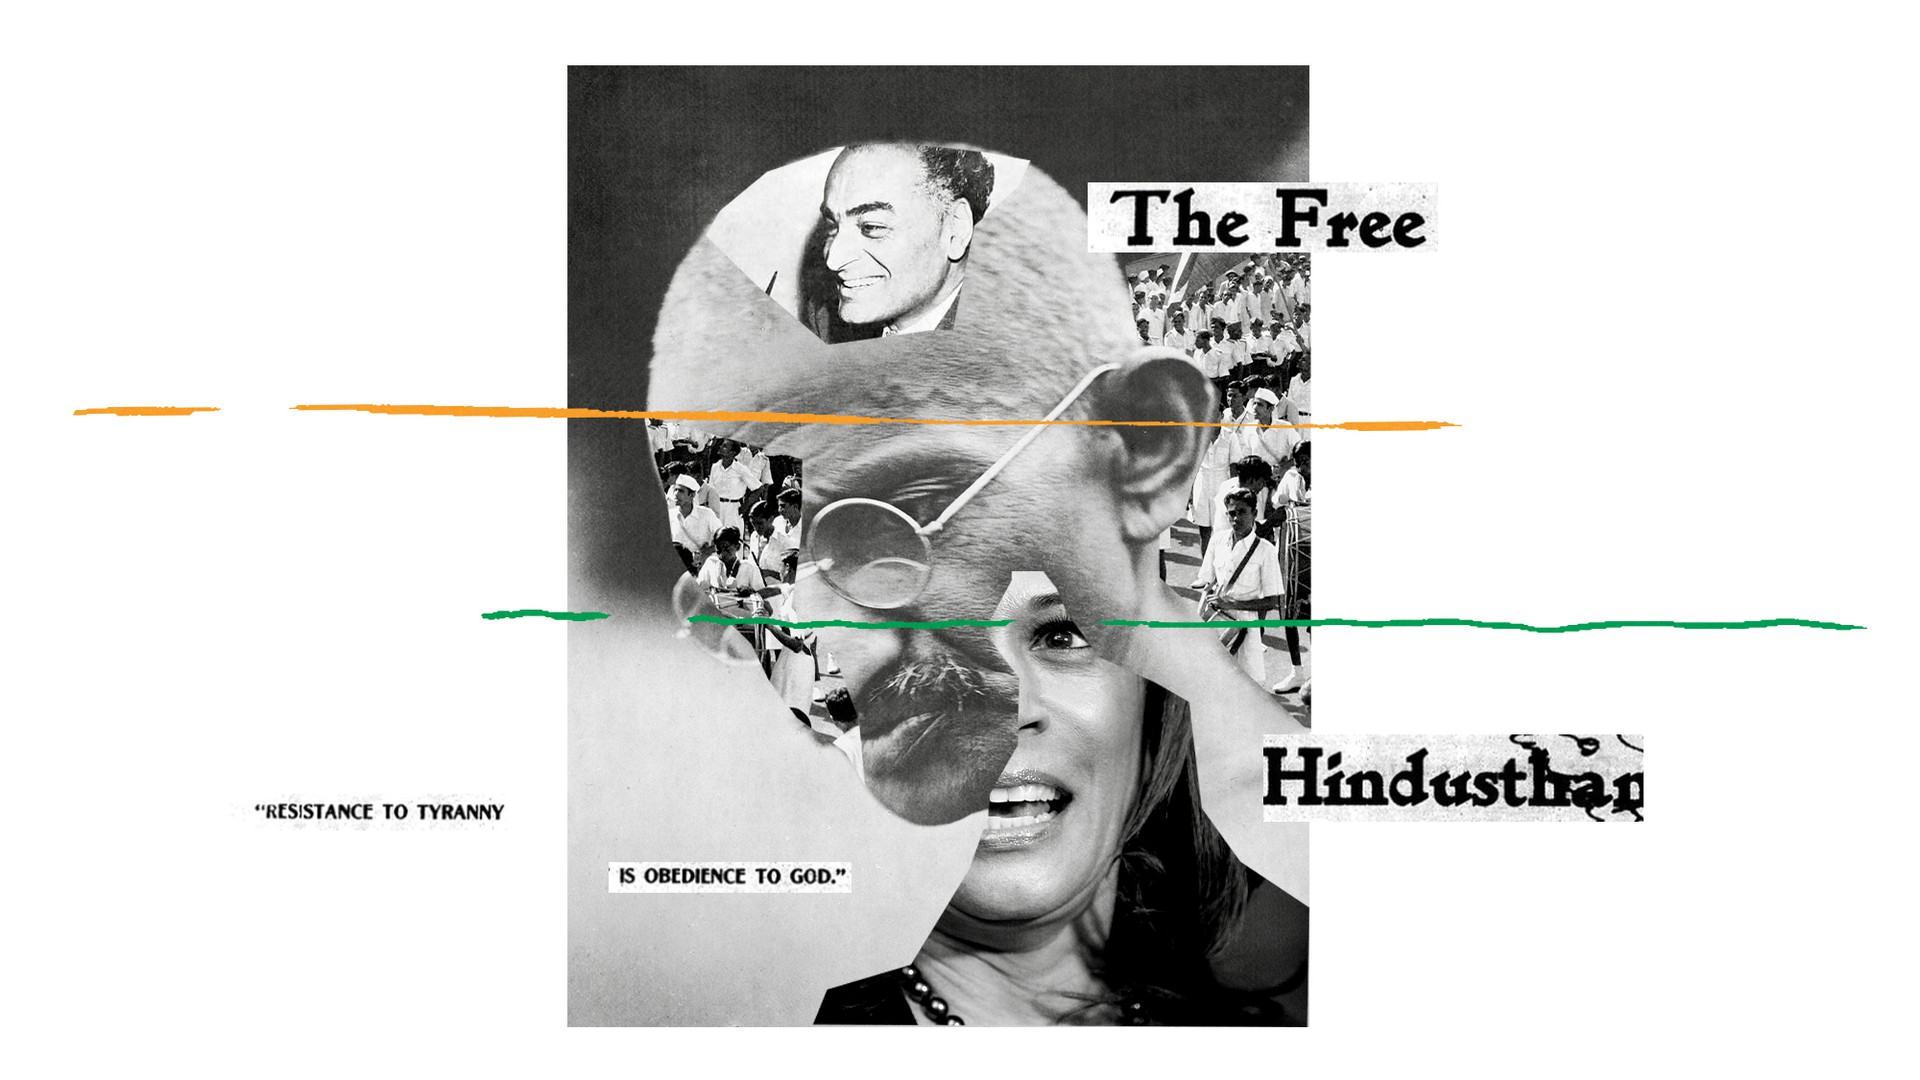 A collage including images of J. J. Singh, Kamala Harris, and Mahatma Gandhi